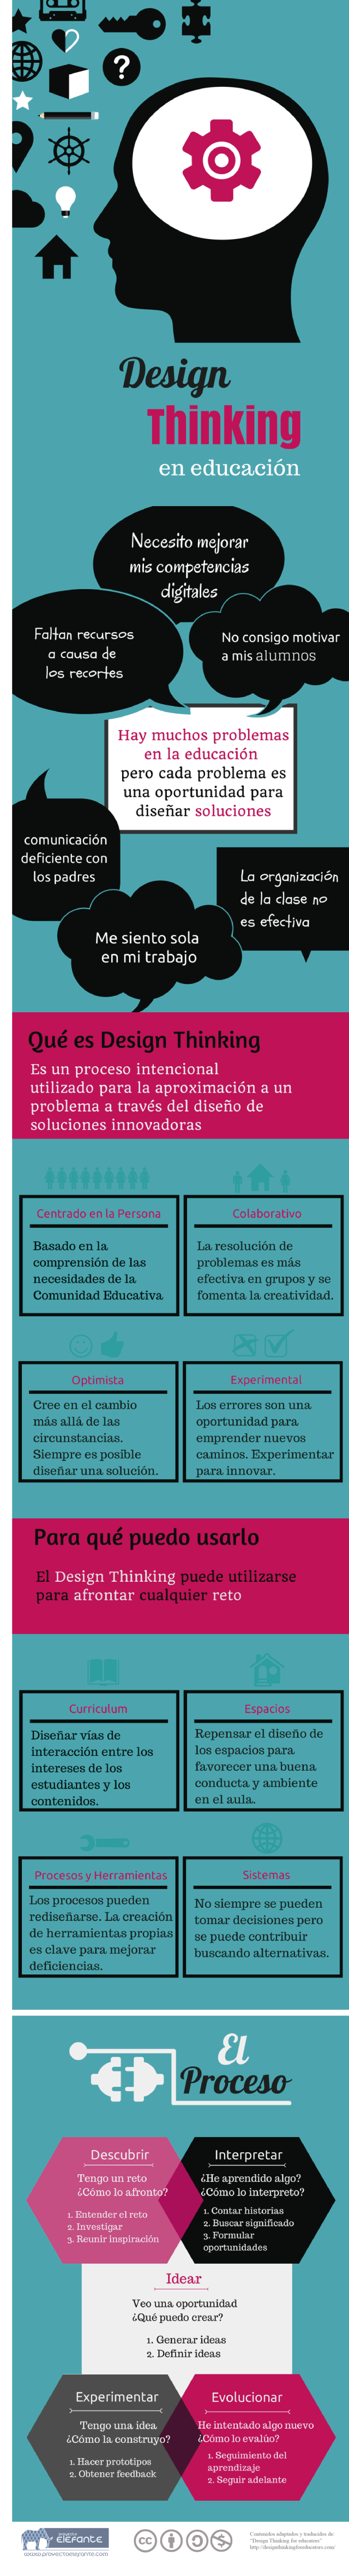 Design Thinking para la educación